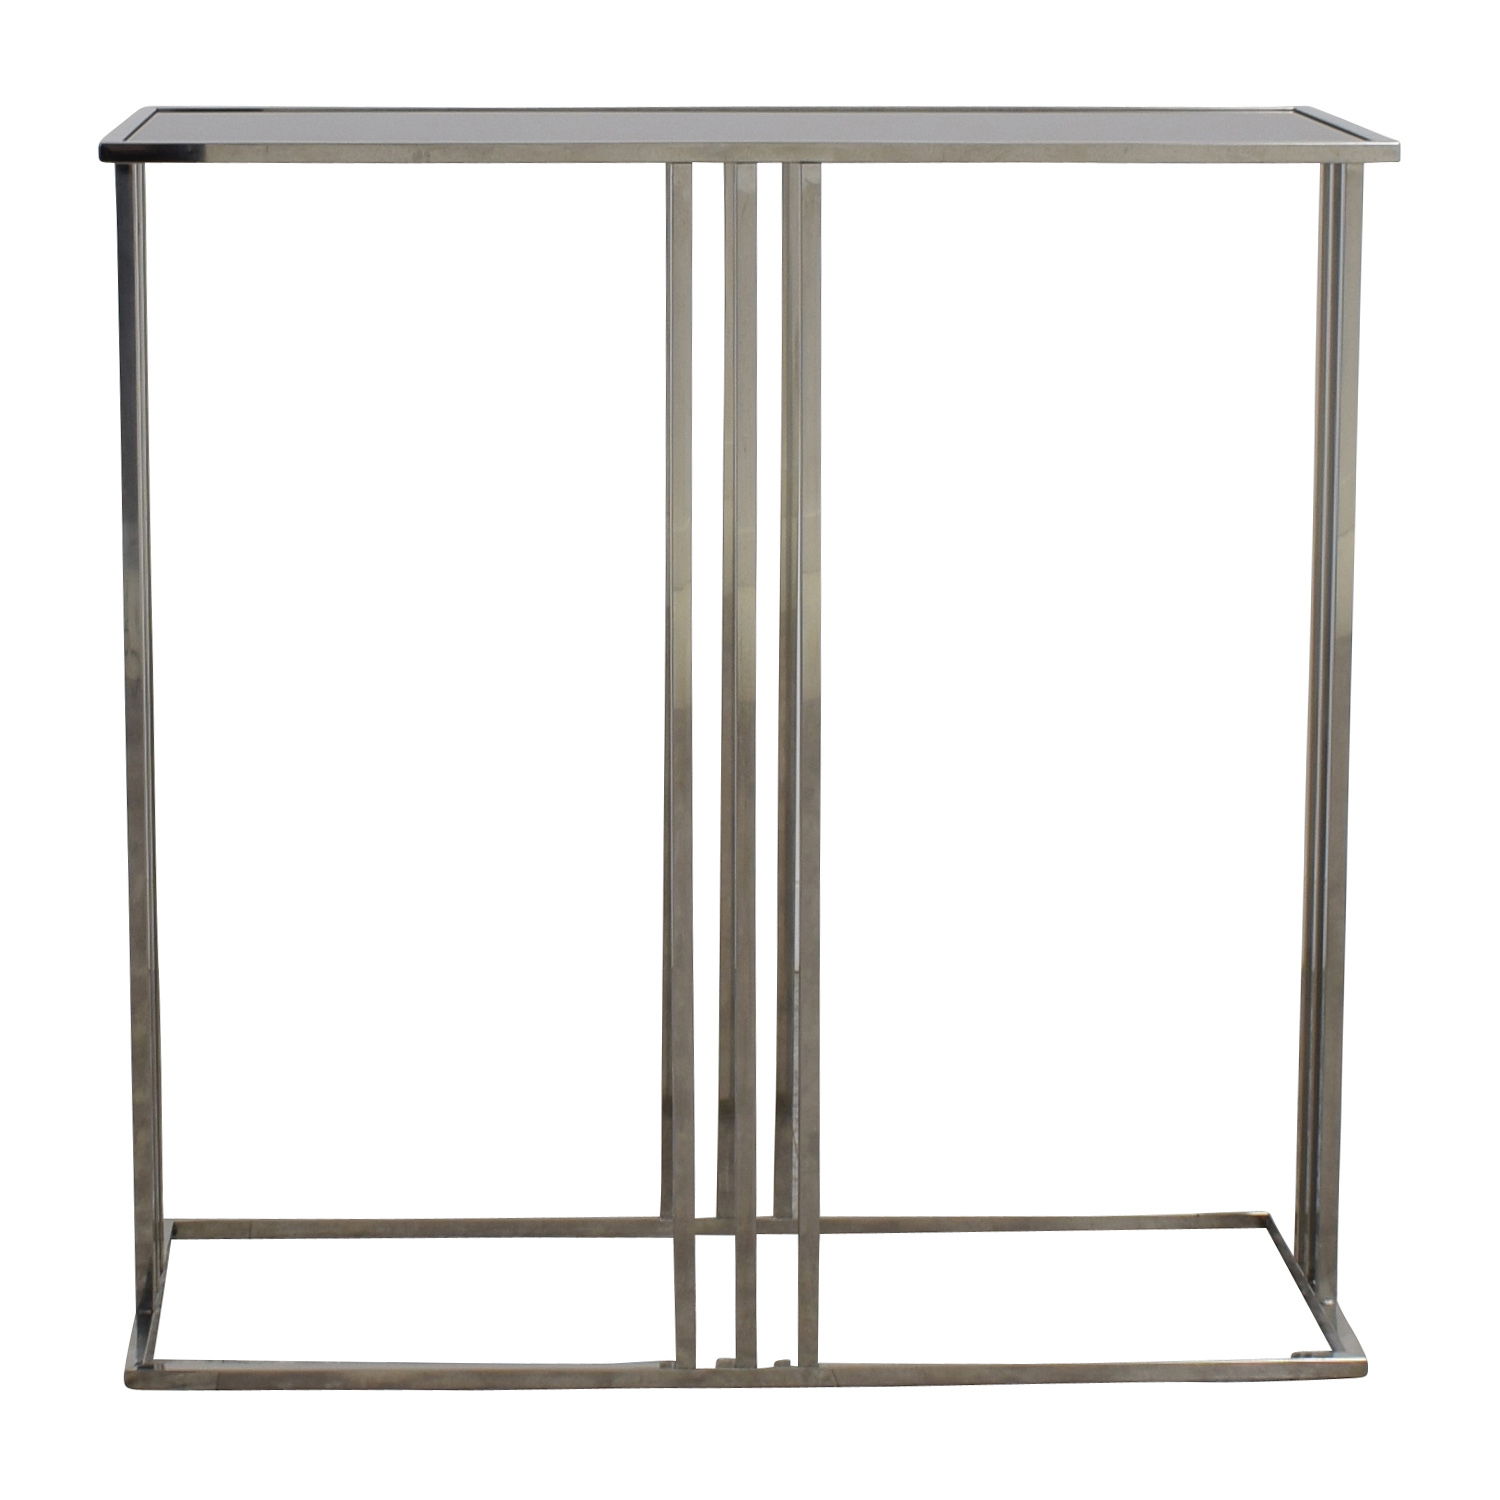 Marshalls Homegoods Black and Silver Console Entryway Table Marshalls Homegoods